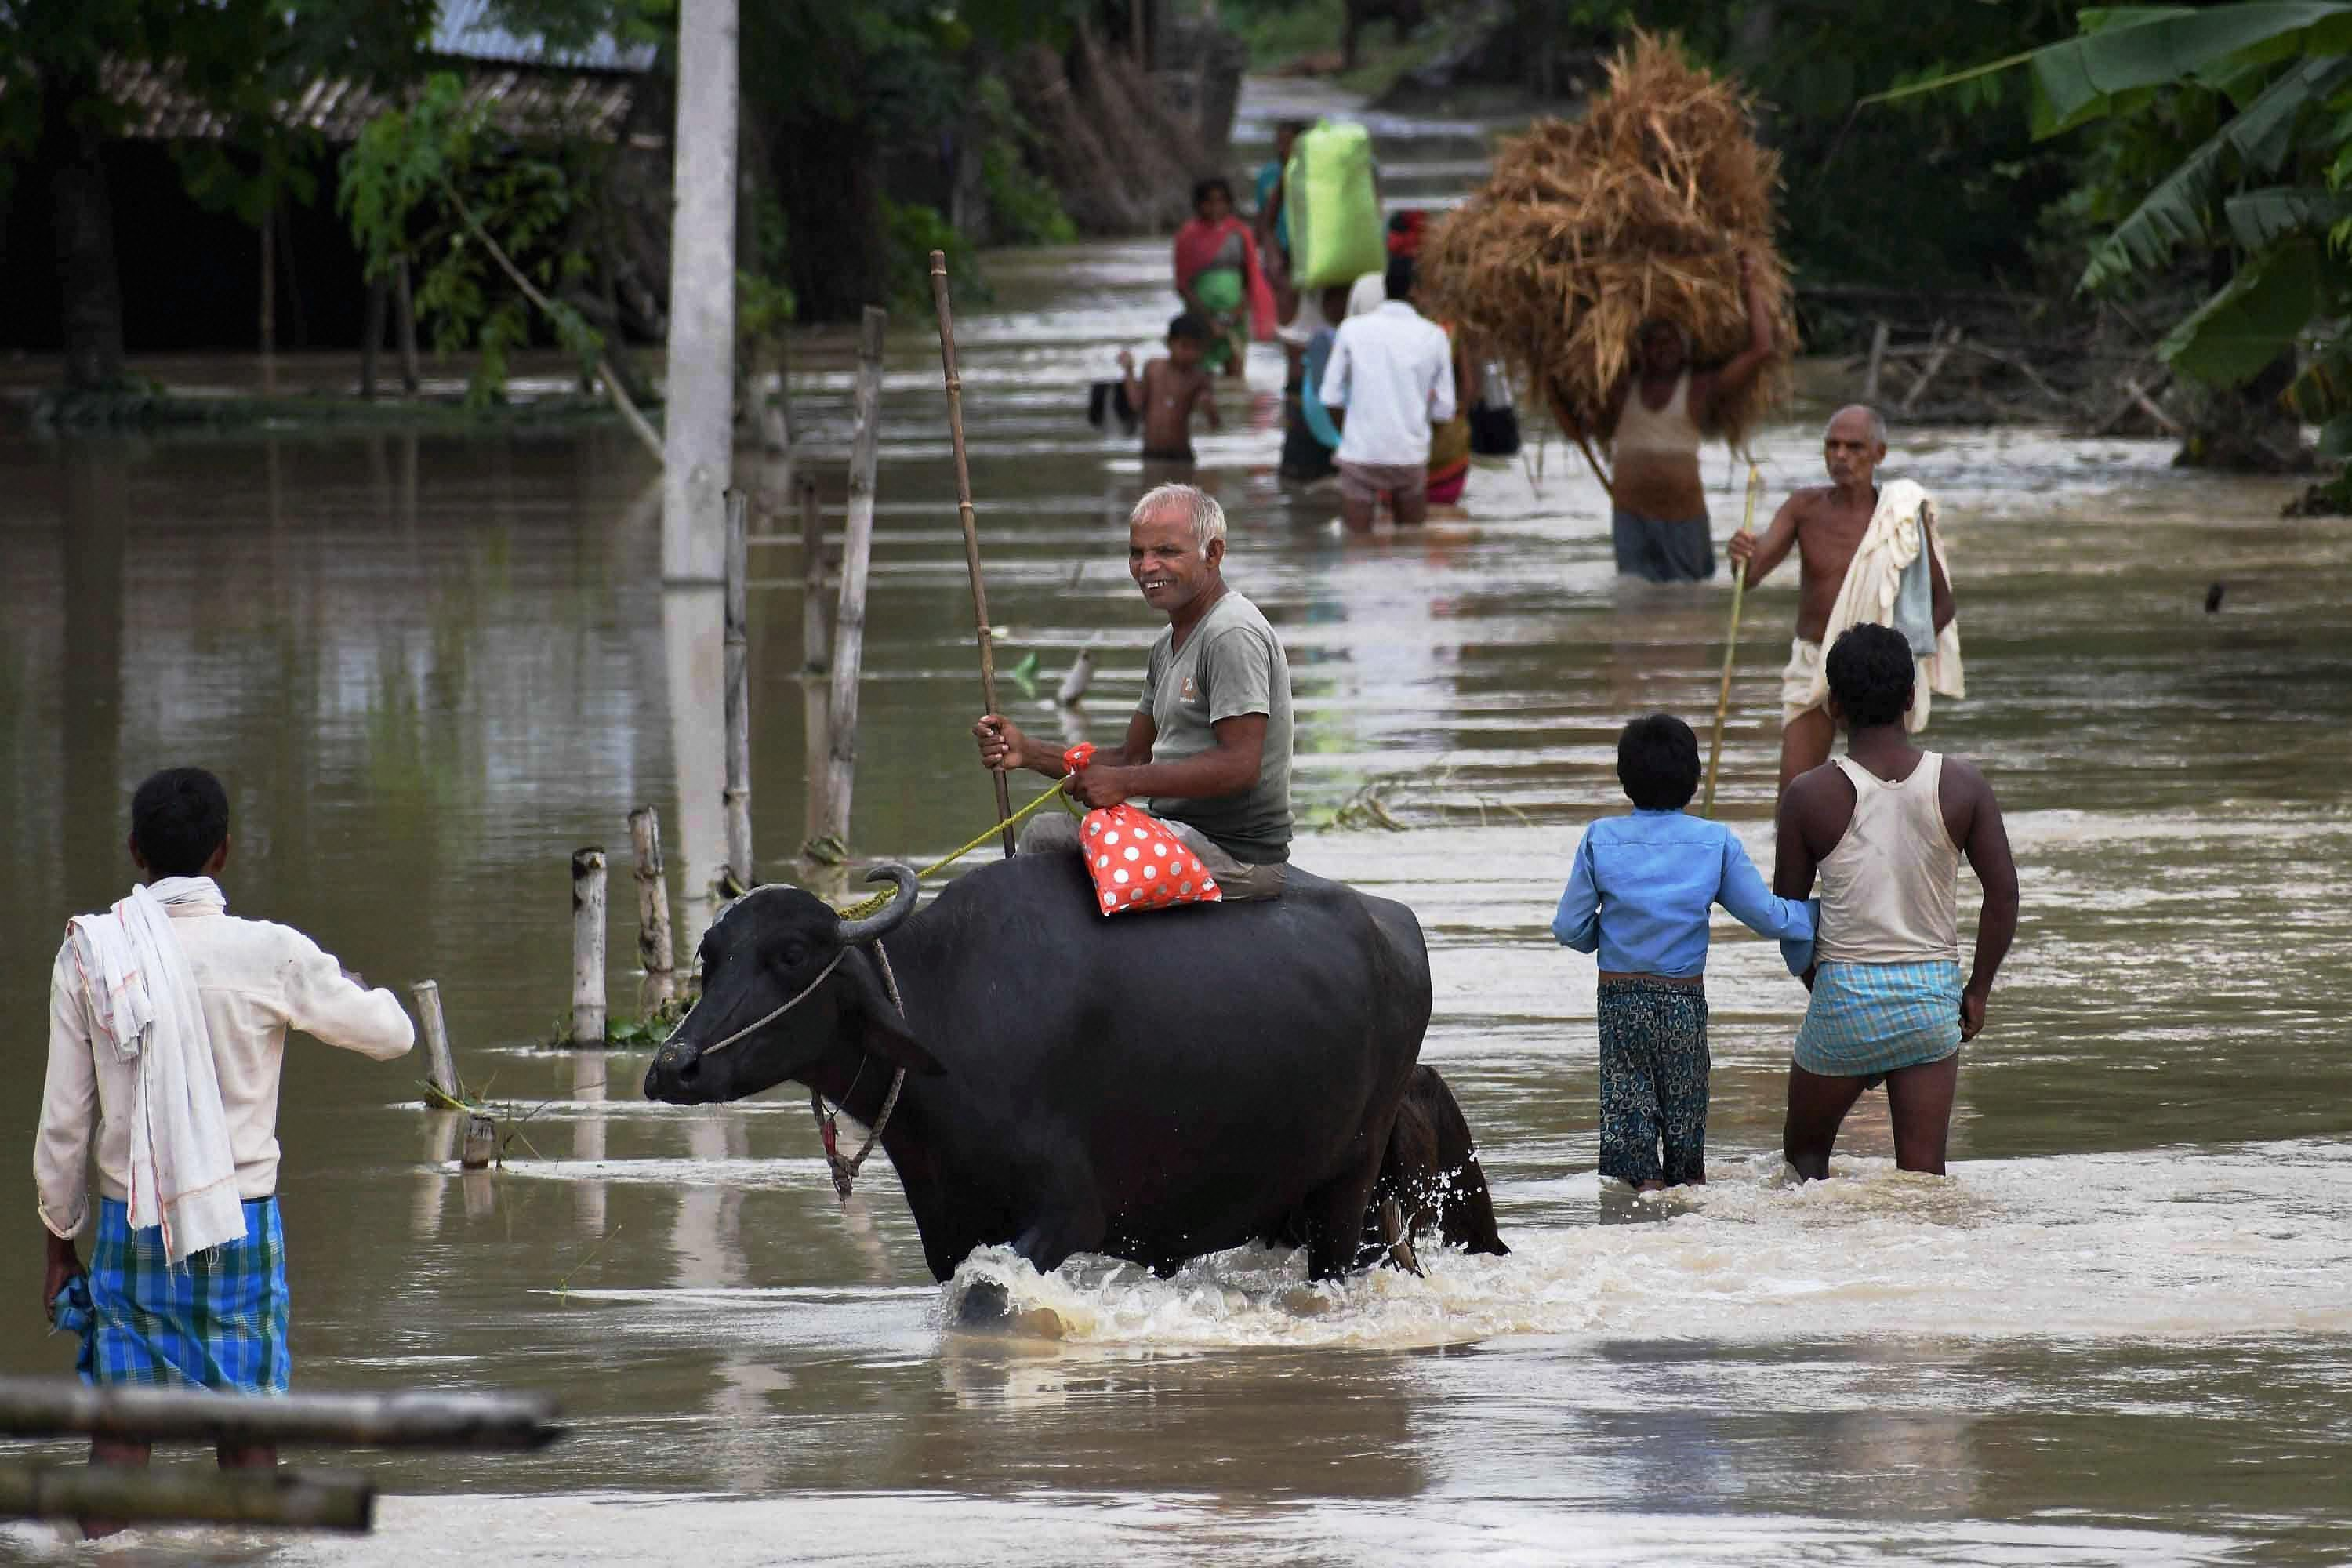 Villagers in the flood-hit Araria district in Bihar. (Credit: PTI)